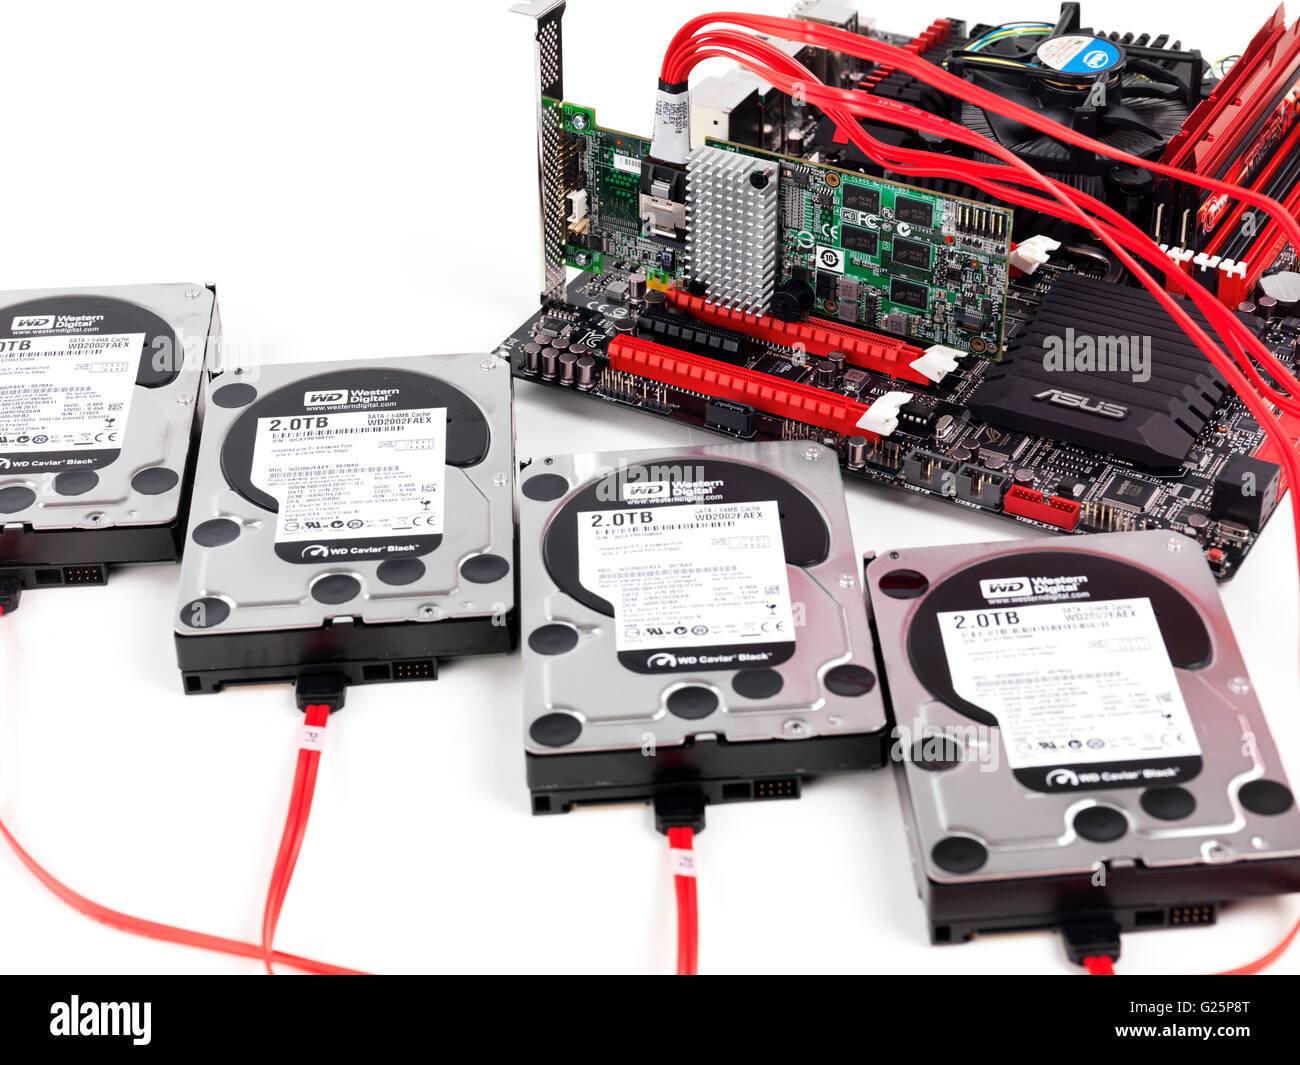 Four hard drives connected to computer motherboard with a RAID controller - Stock Image